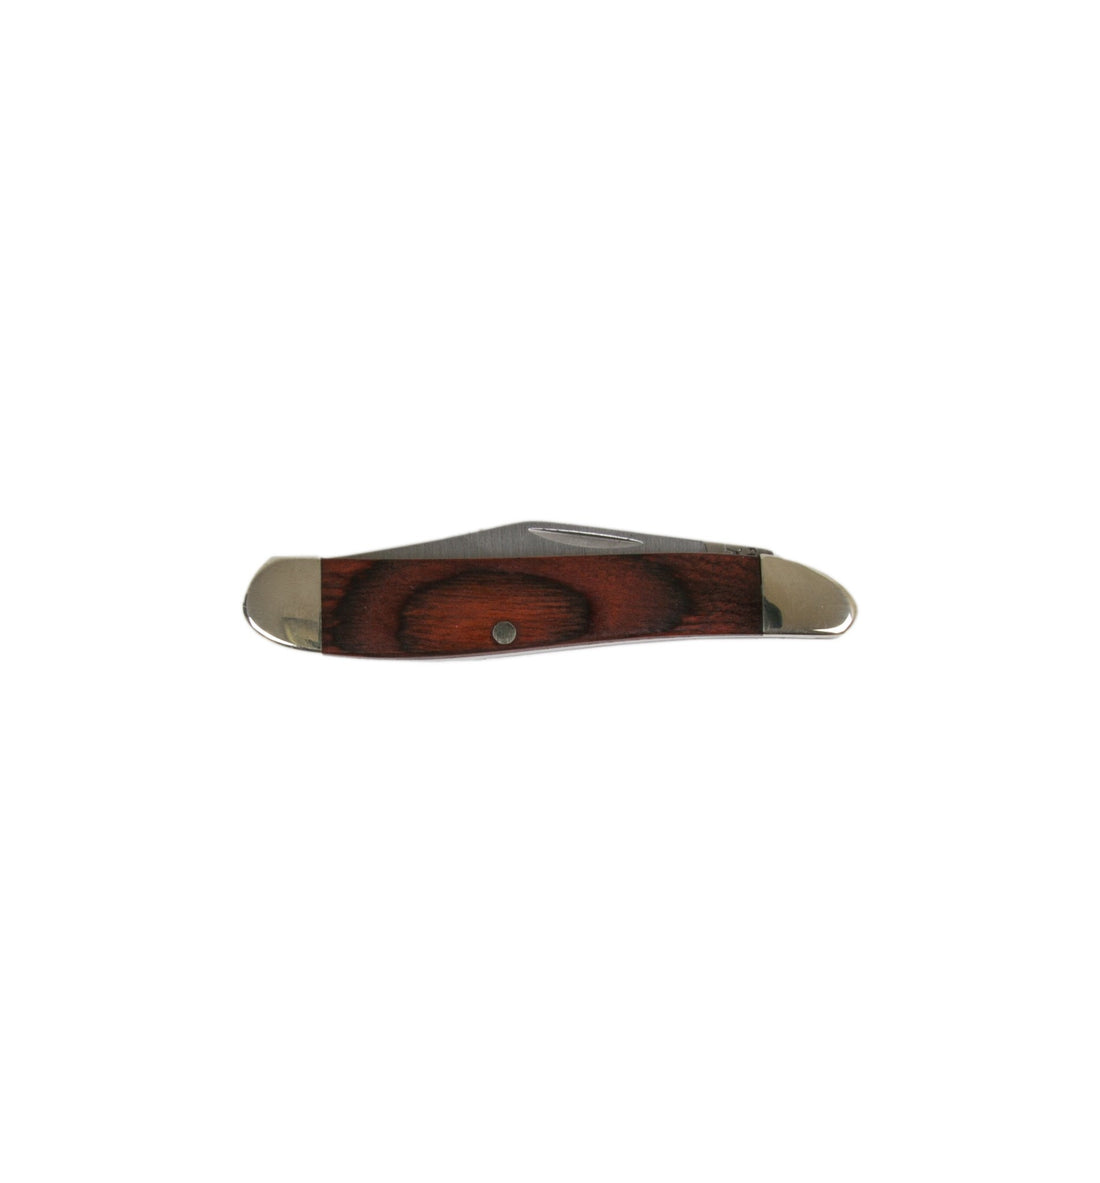 Bear & Son Peanut Rosewood Knife - Accessories: Knives - Iron and Resin